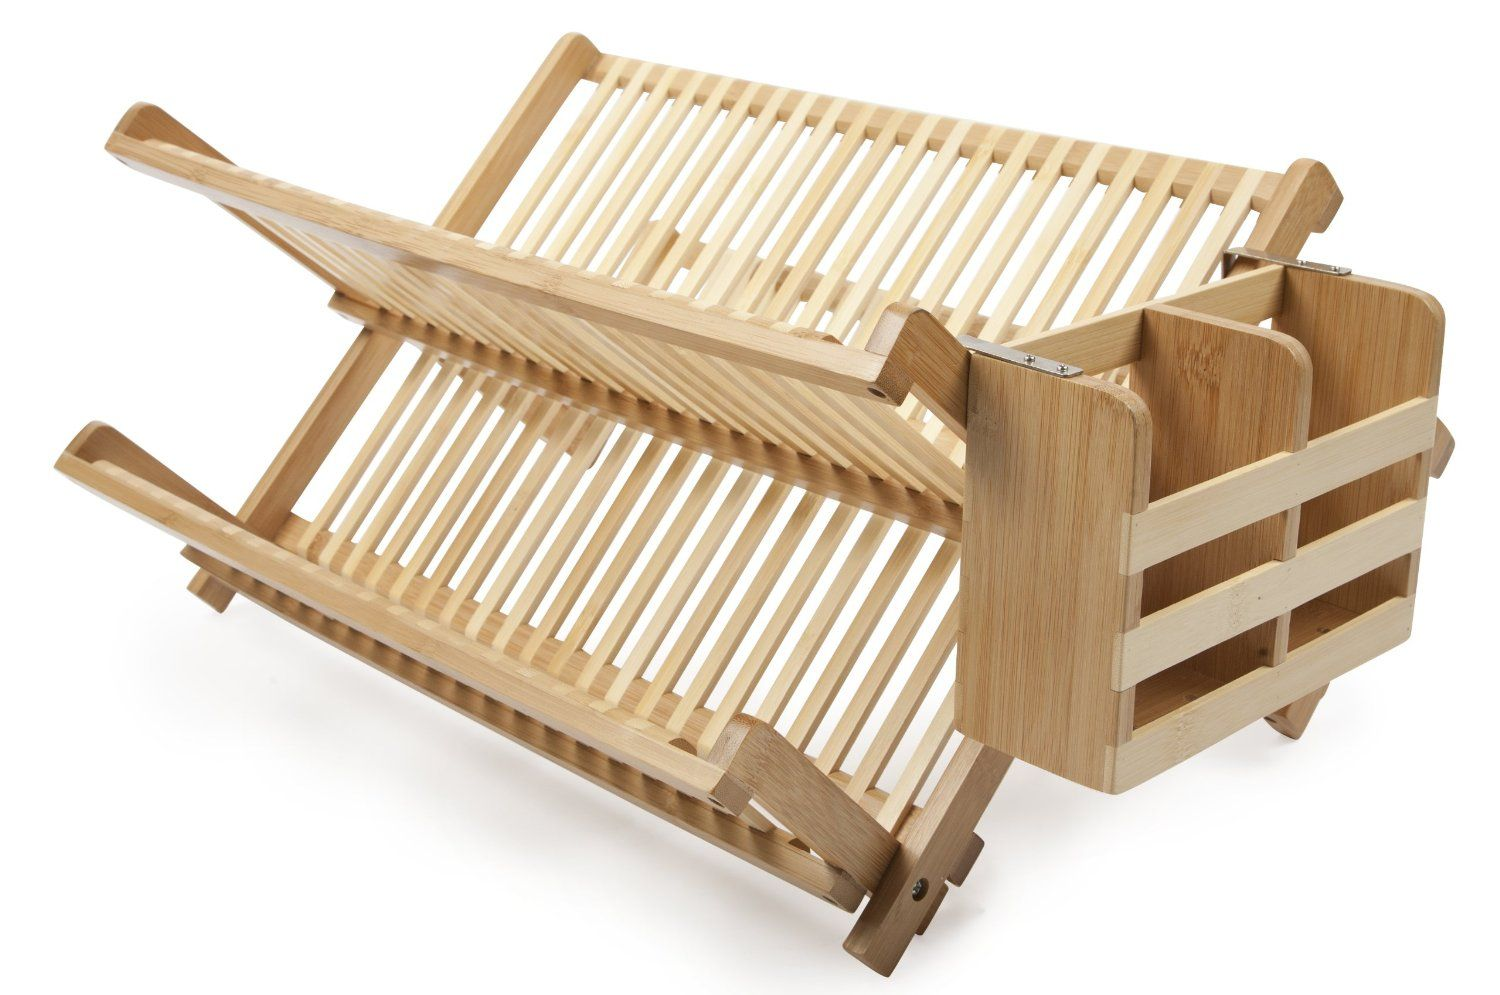 Amazon Com Core Bamboo Dish Rack With Utensil Holder Natural Utensil Organizers Kitchen Dining Bamboo Dishes